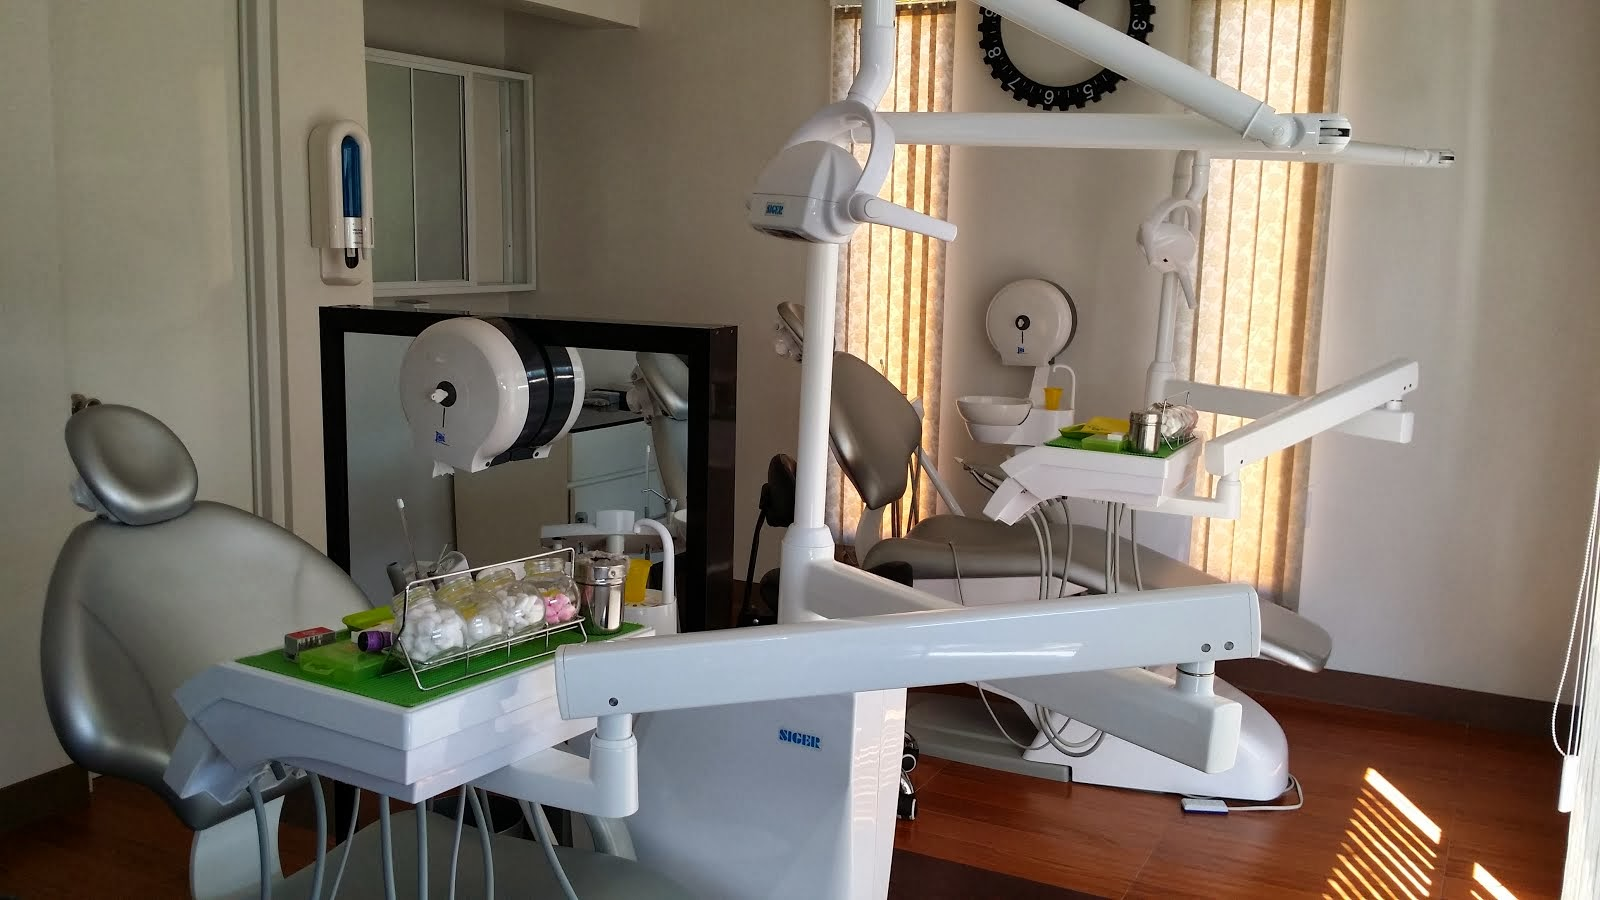 Cavite Ortho and Implant Treatment Area